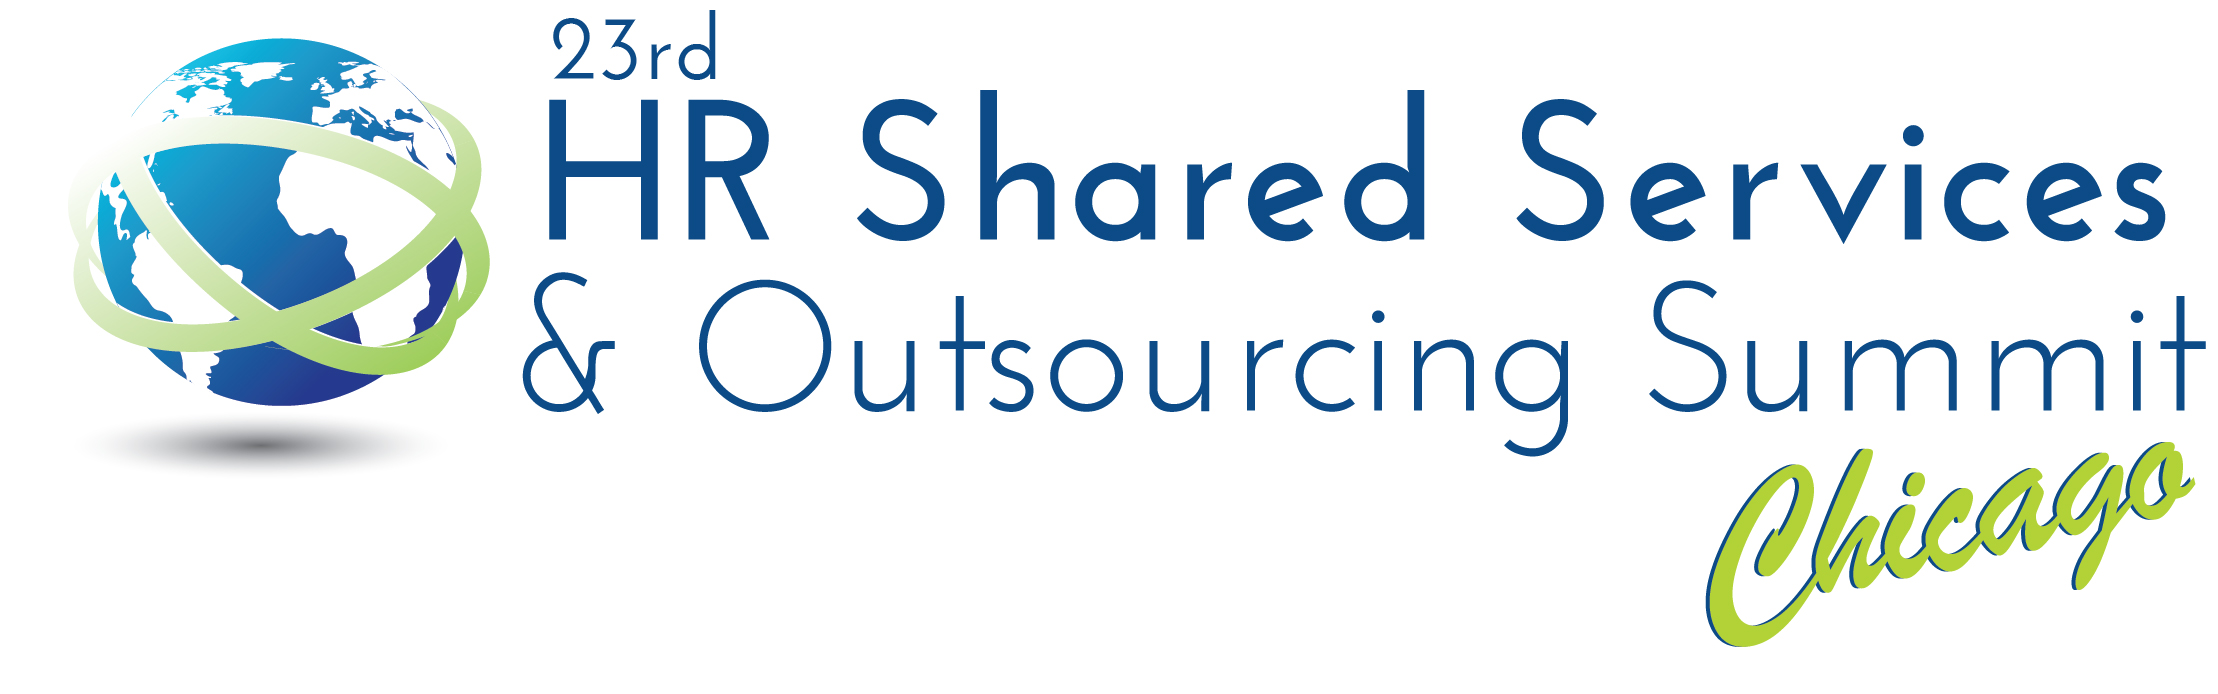 23rd HR Shared Services & Outsourcing Summit